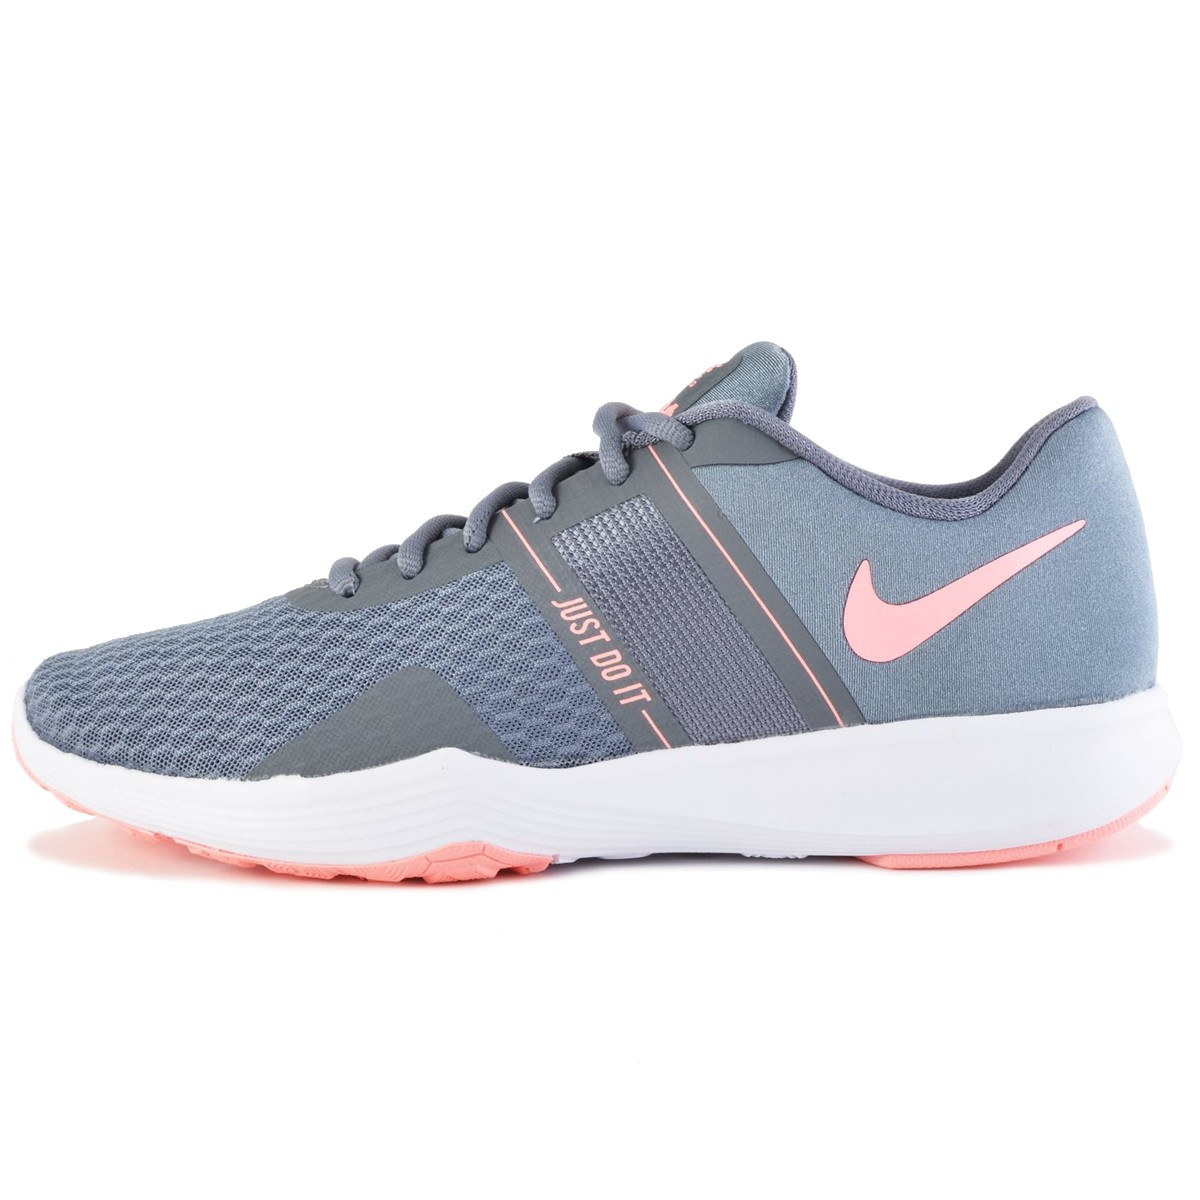 NIKE Patike NIKE CITY TRAINER 2 WOMEN'S TRAINING SHOE